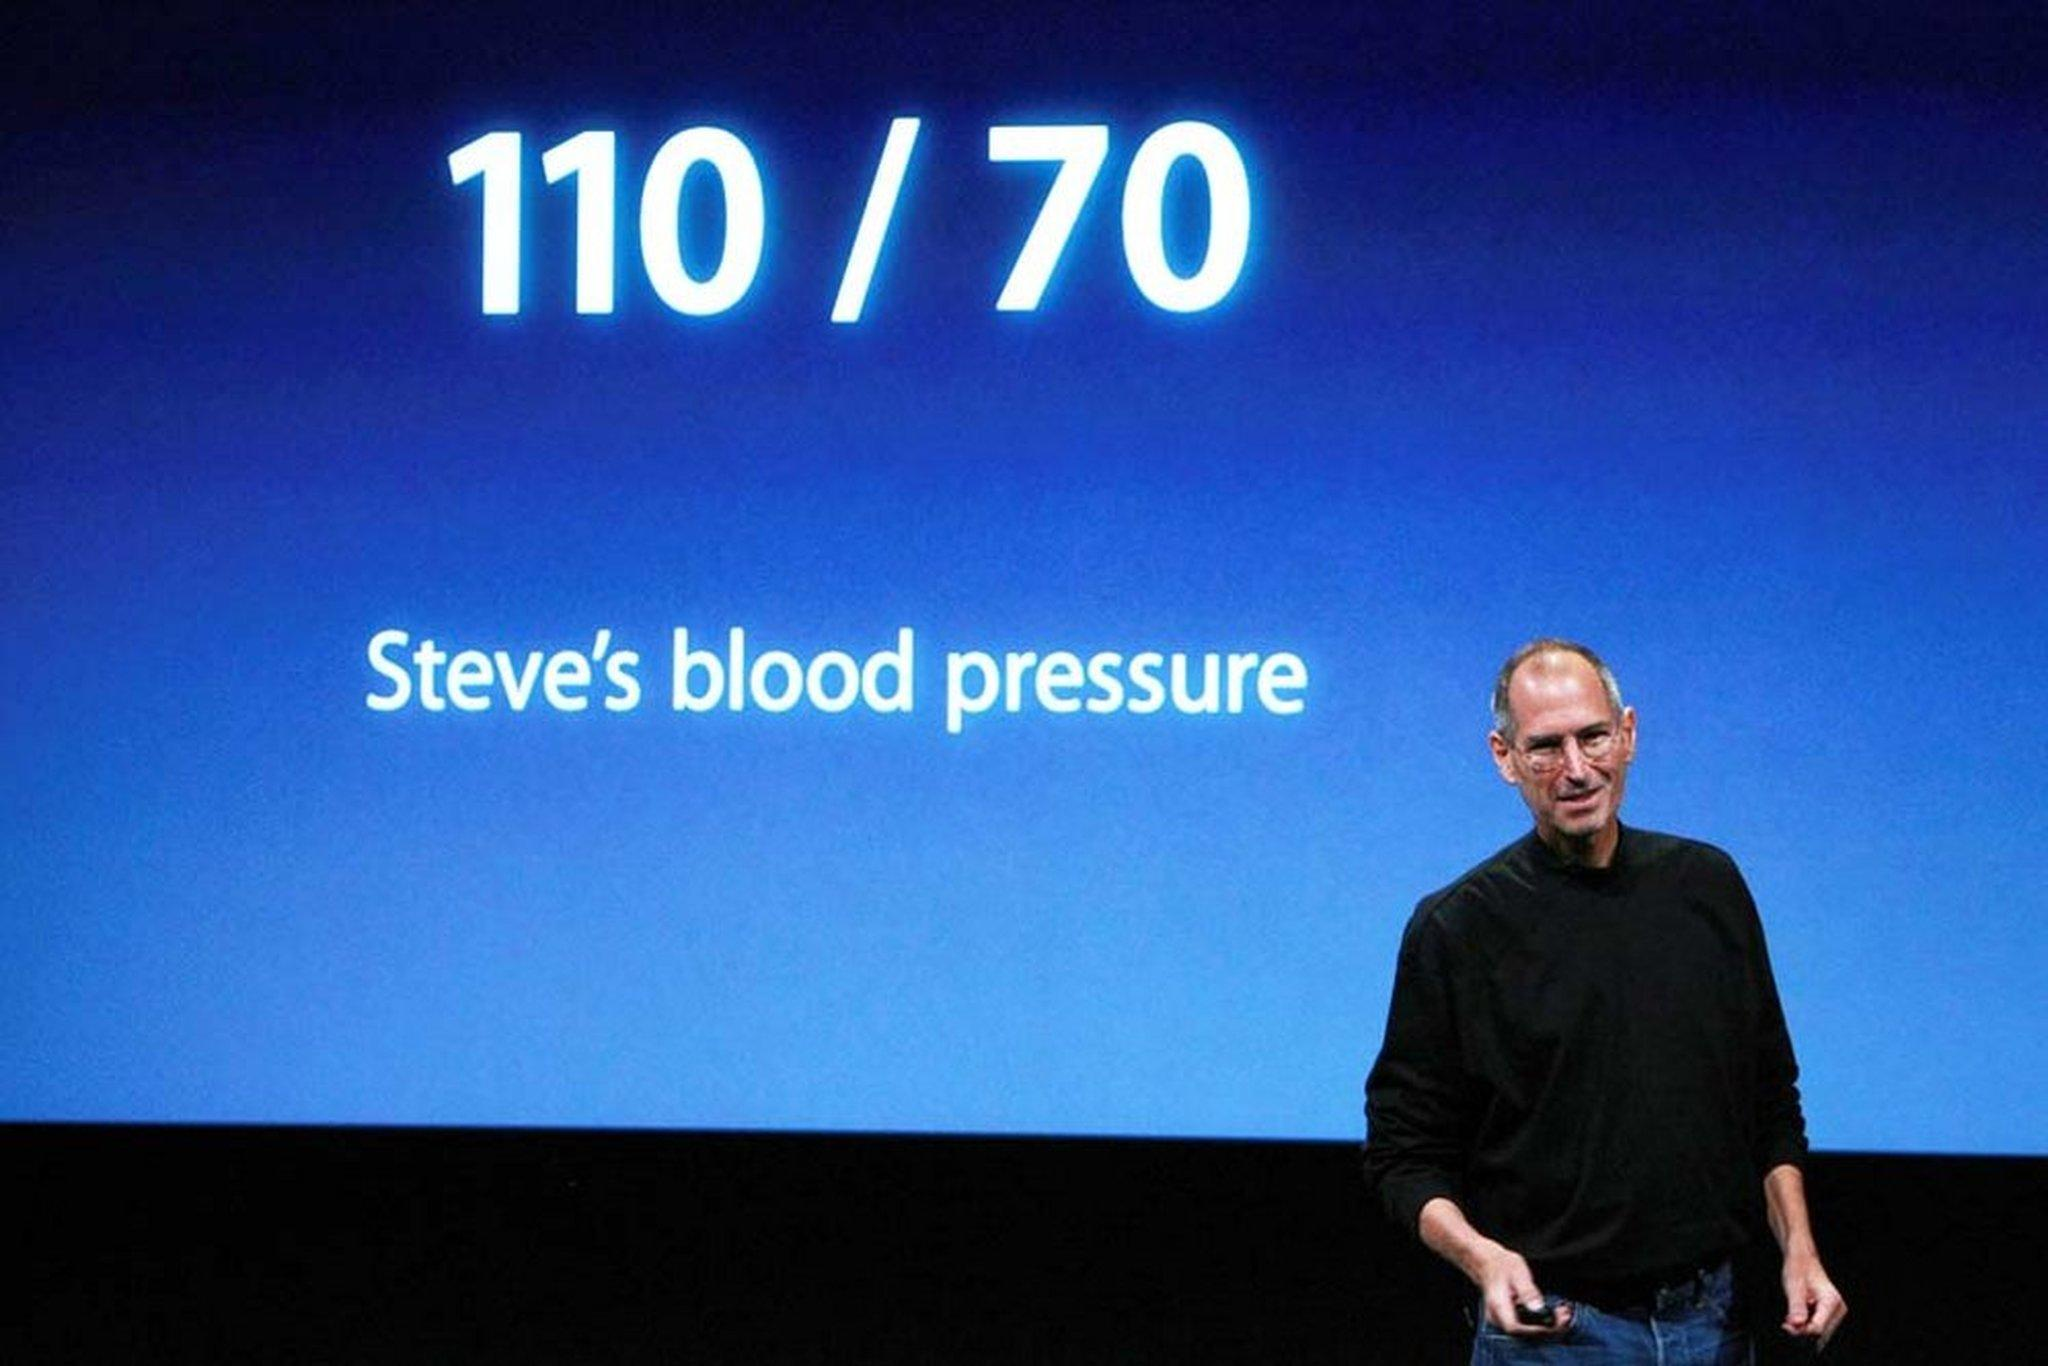 apple visionary company Steve jobs (1955-2011) apple has lost a visionary and creative genius, and the world has lost an amazing human being those of us who have been fortunate enough to know and work with steve.